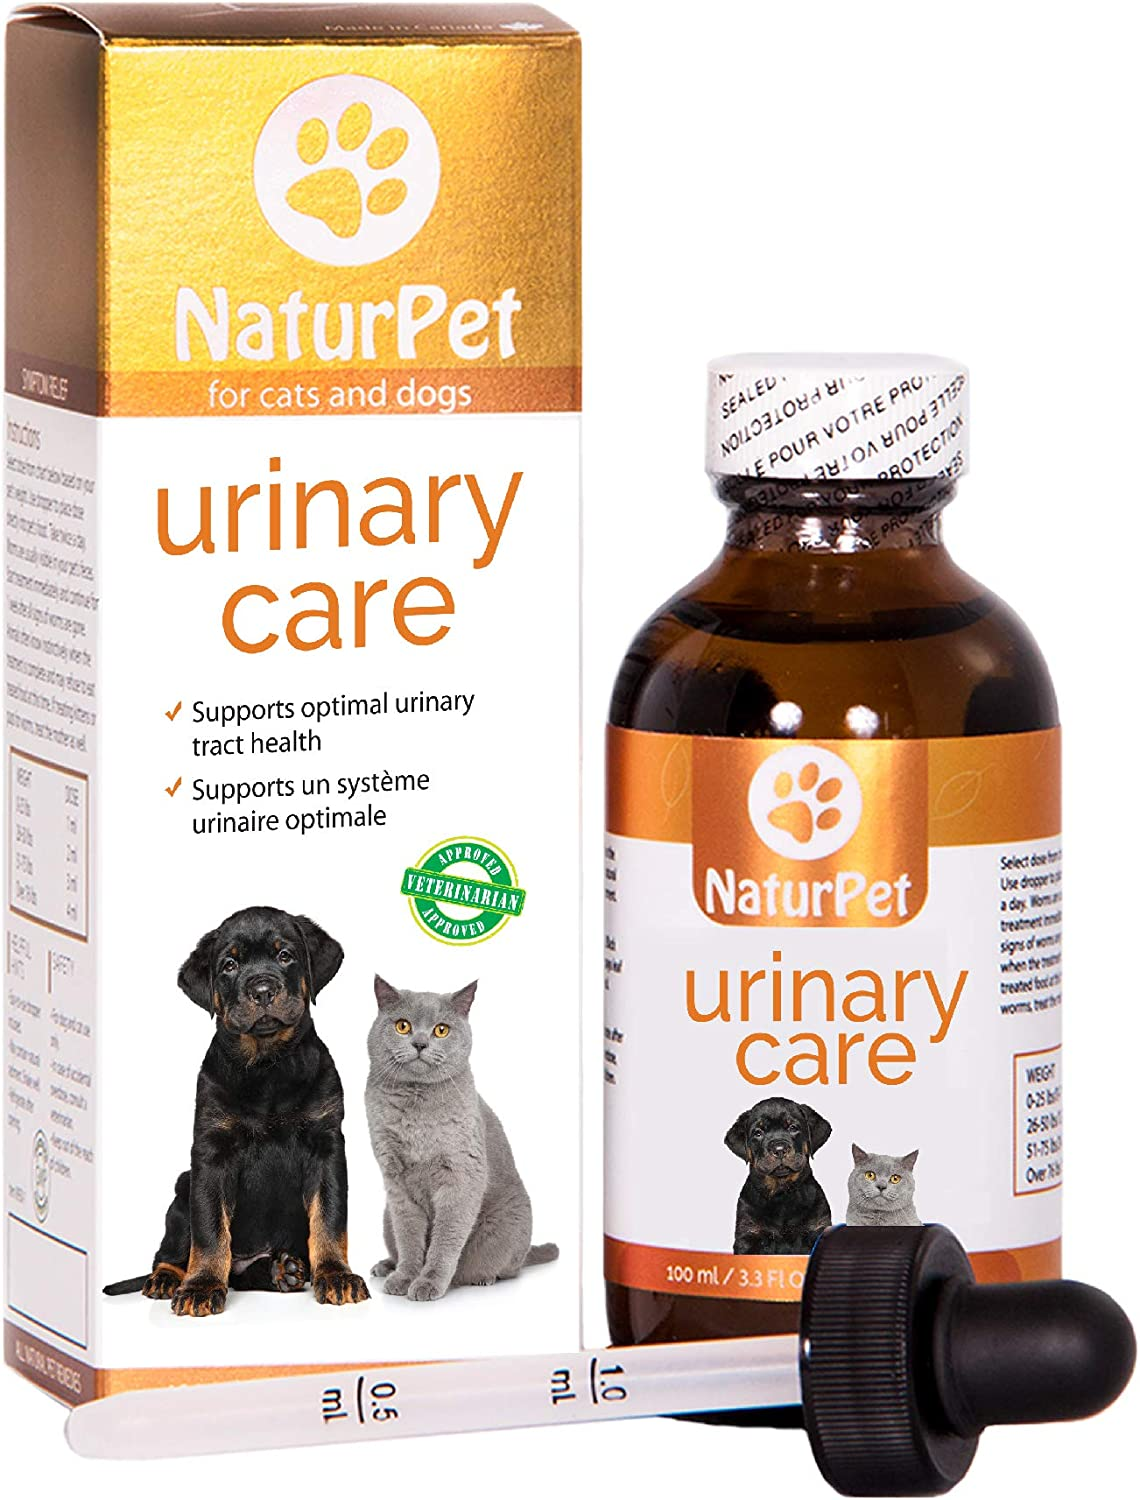 NaturPet Urinary Care for Dogs and Cats | Urinary Tract Support & UTI Relief, Gravel, Stones, Frequent Urination | 100mL